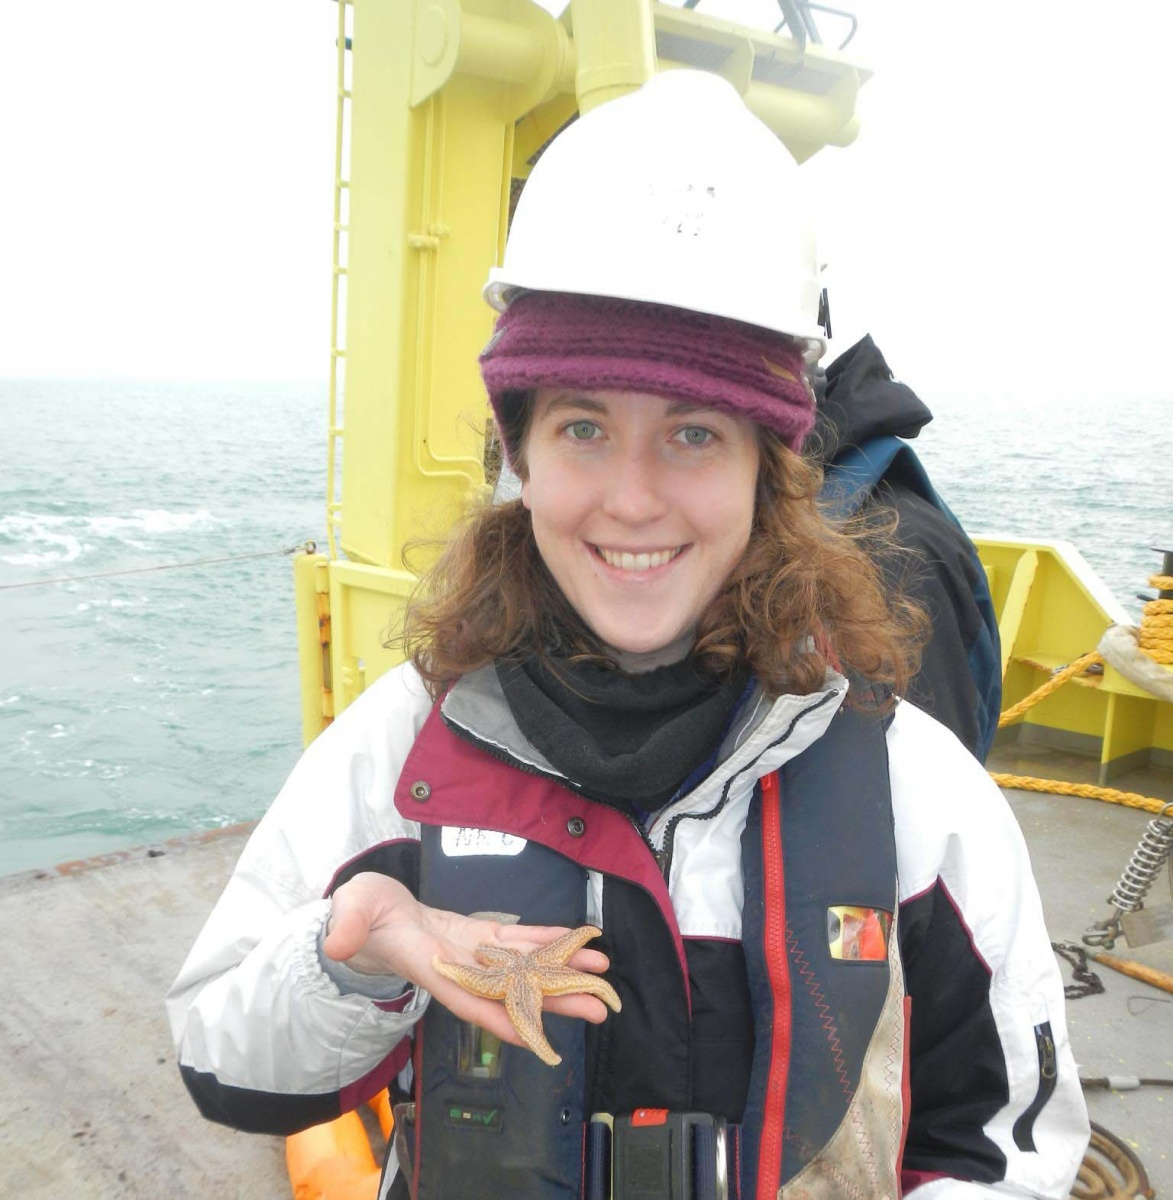 Woman on research vessel wears a hardhat and smiles while holding a seastar.